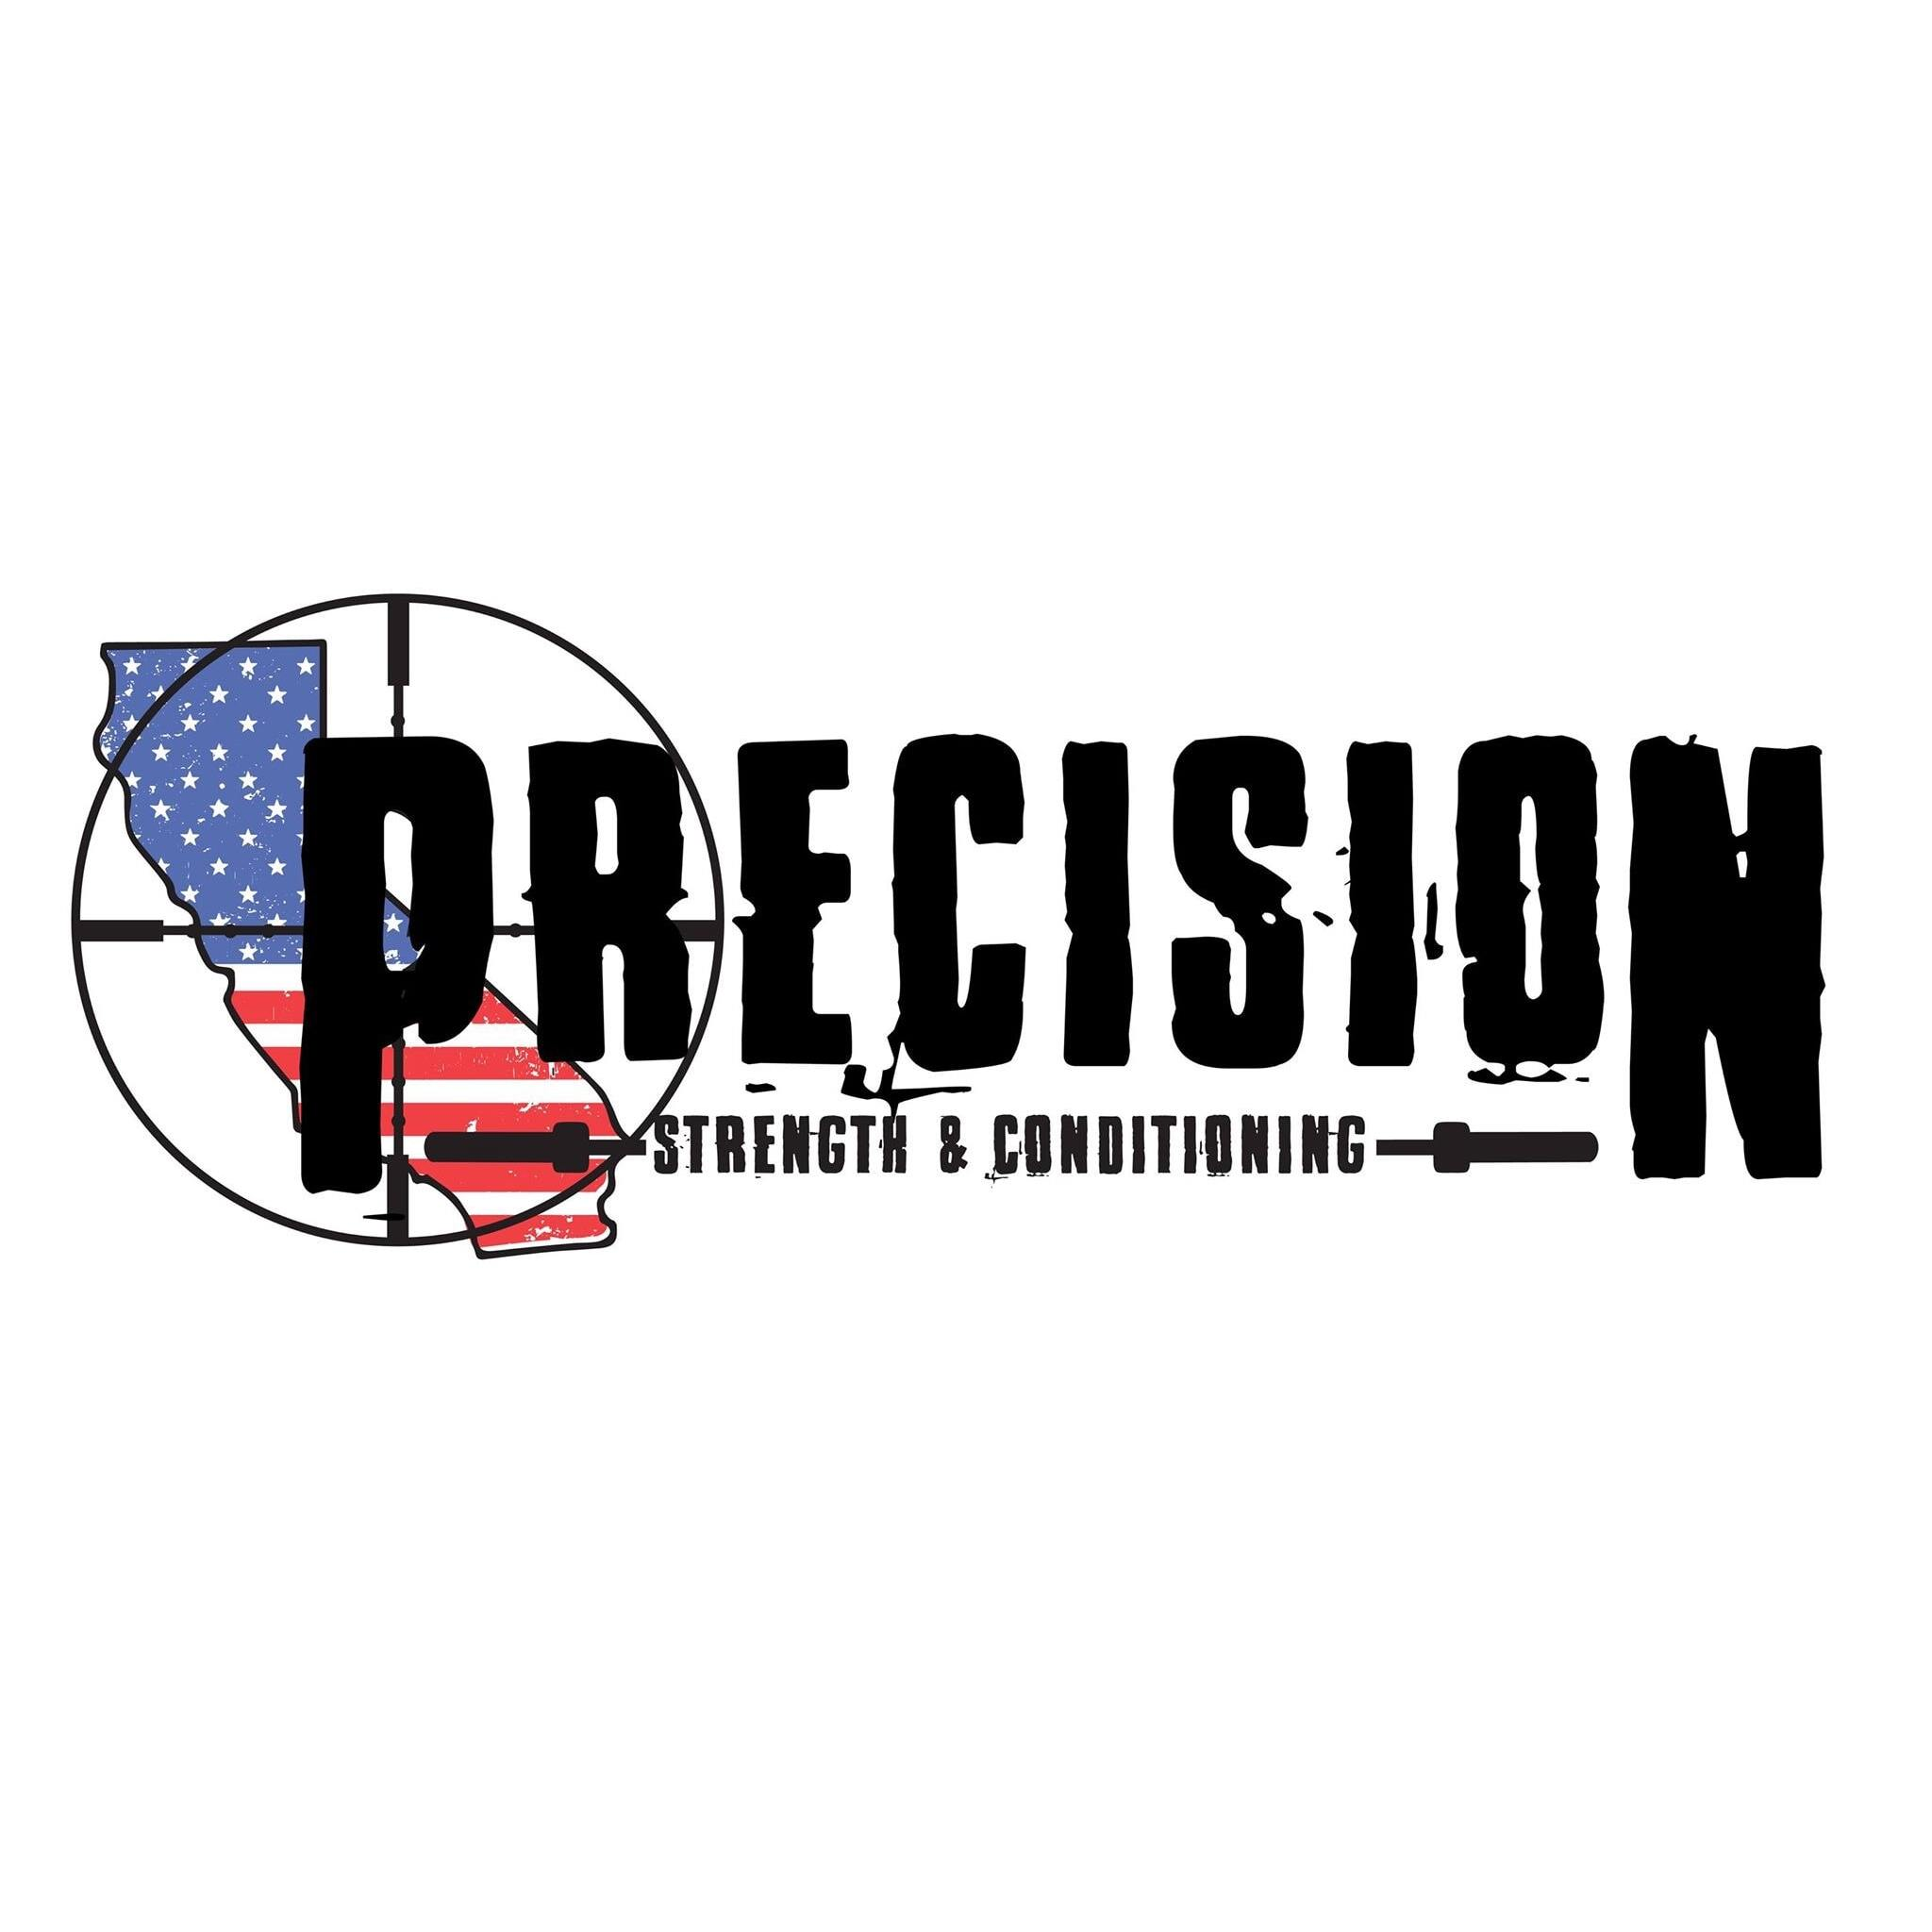 California Precision Strength & Conditioning